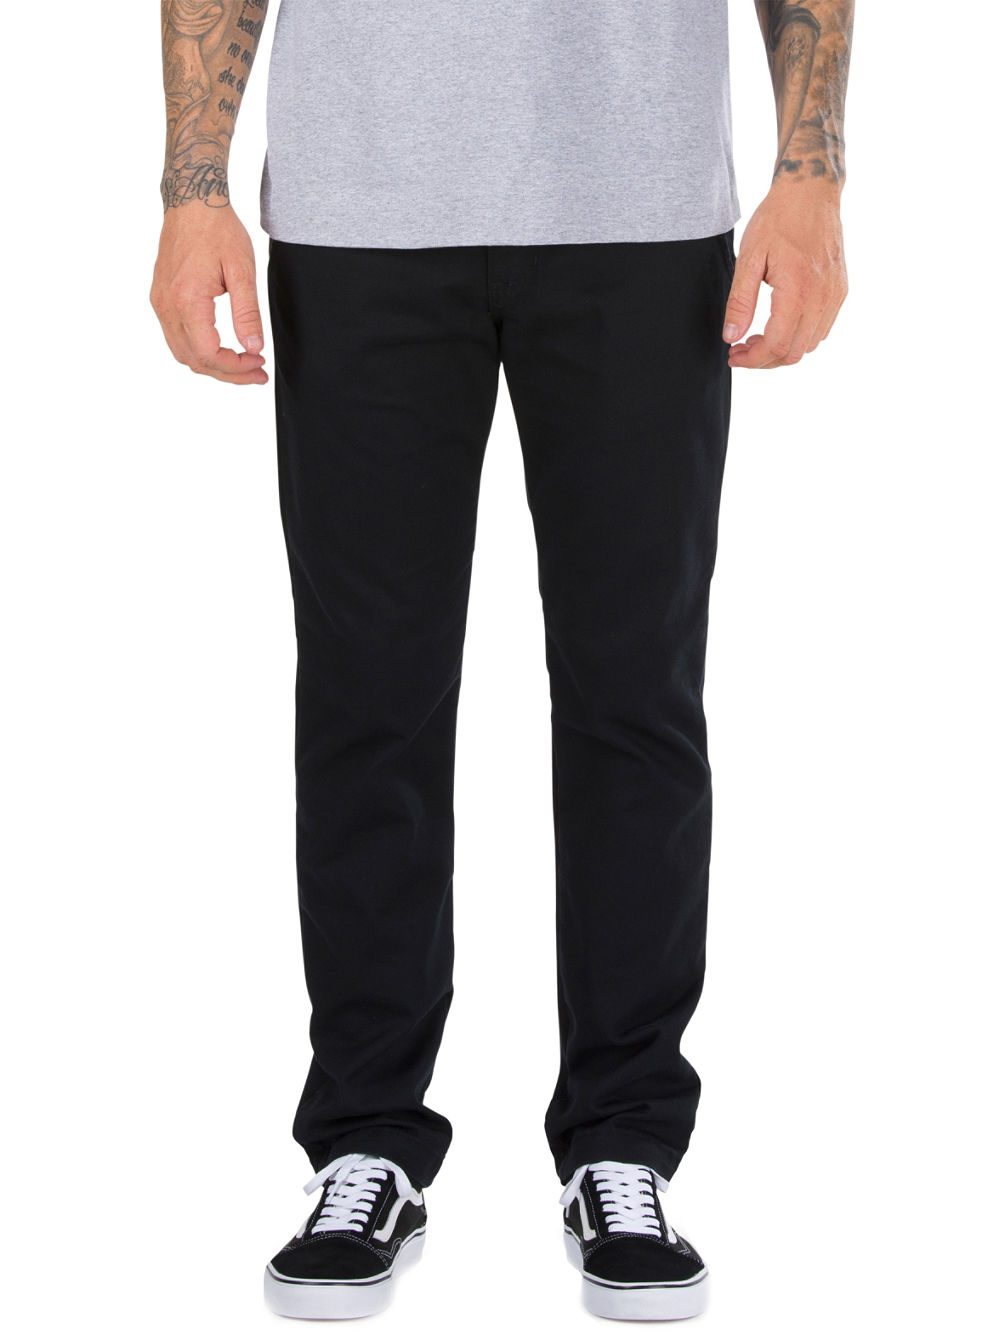 Authentic Chino Stretch Pantalones